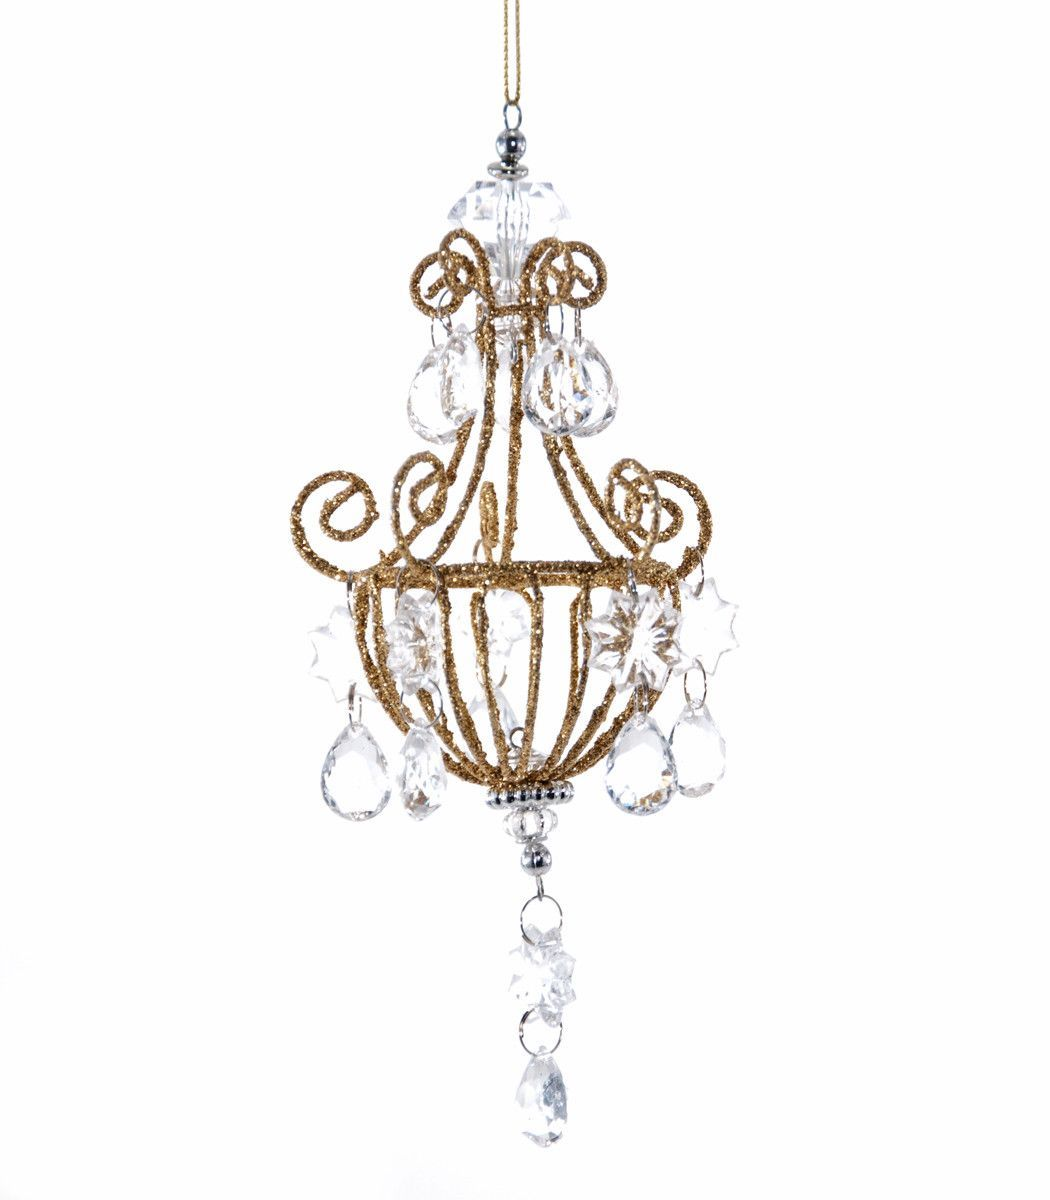 Katherines collection royal white christmas collection twenty katherines collection royal white christmas collection twenty four 65 small crystal chandelier ornaments free arubaitofo Gallery